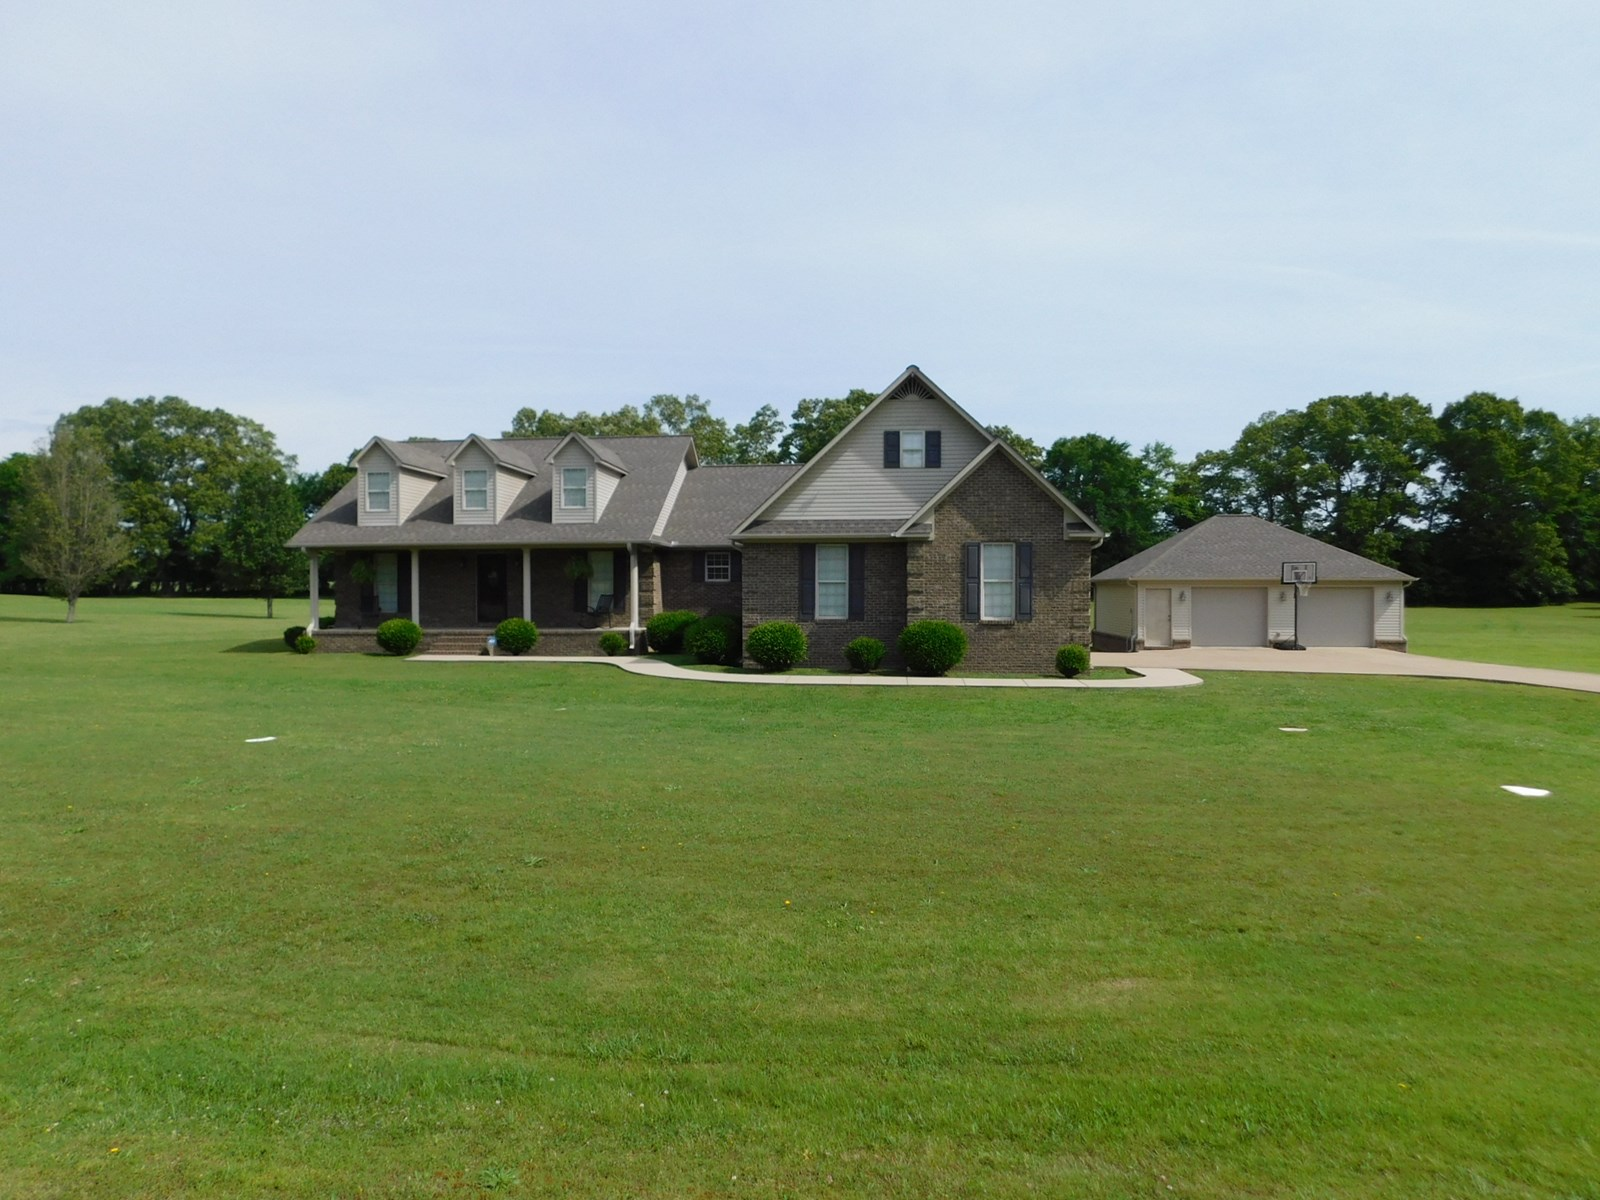 4 BEDROOM HOME FOR SALE WITH POOL & SHOP IN ADAMSVILLE, TN